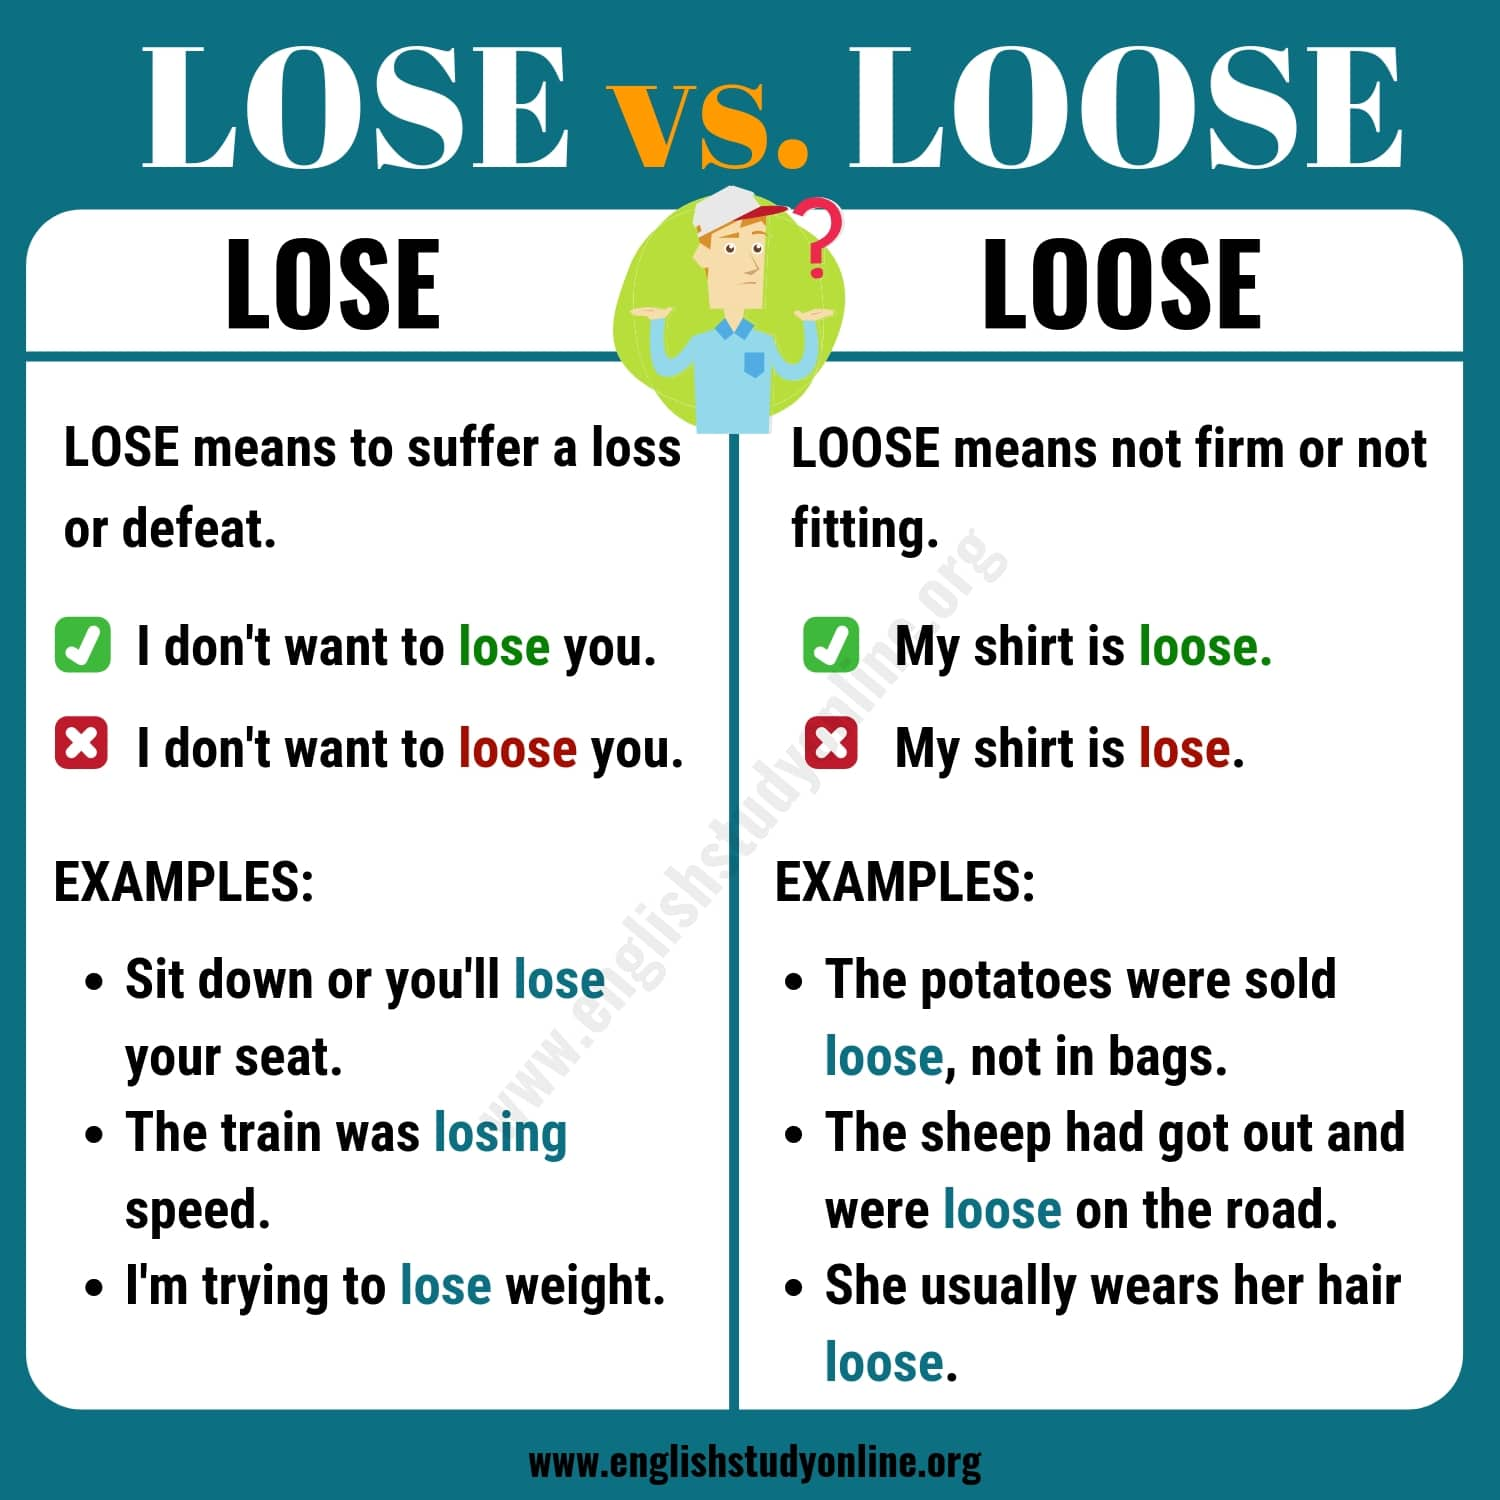 LOSE vs LOOSE